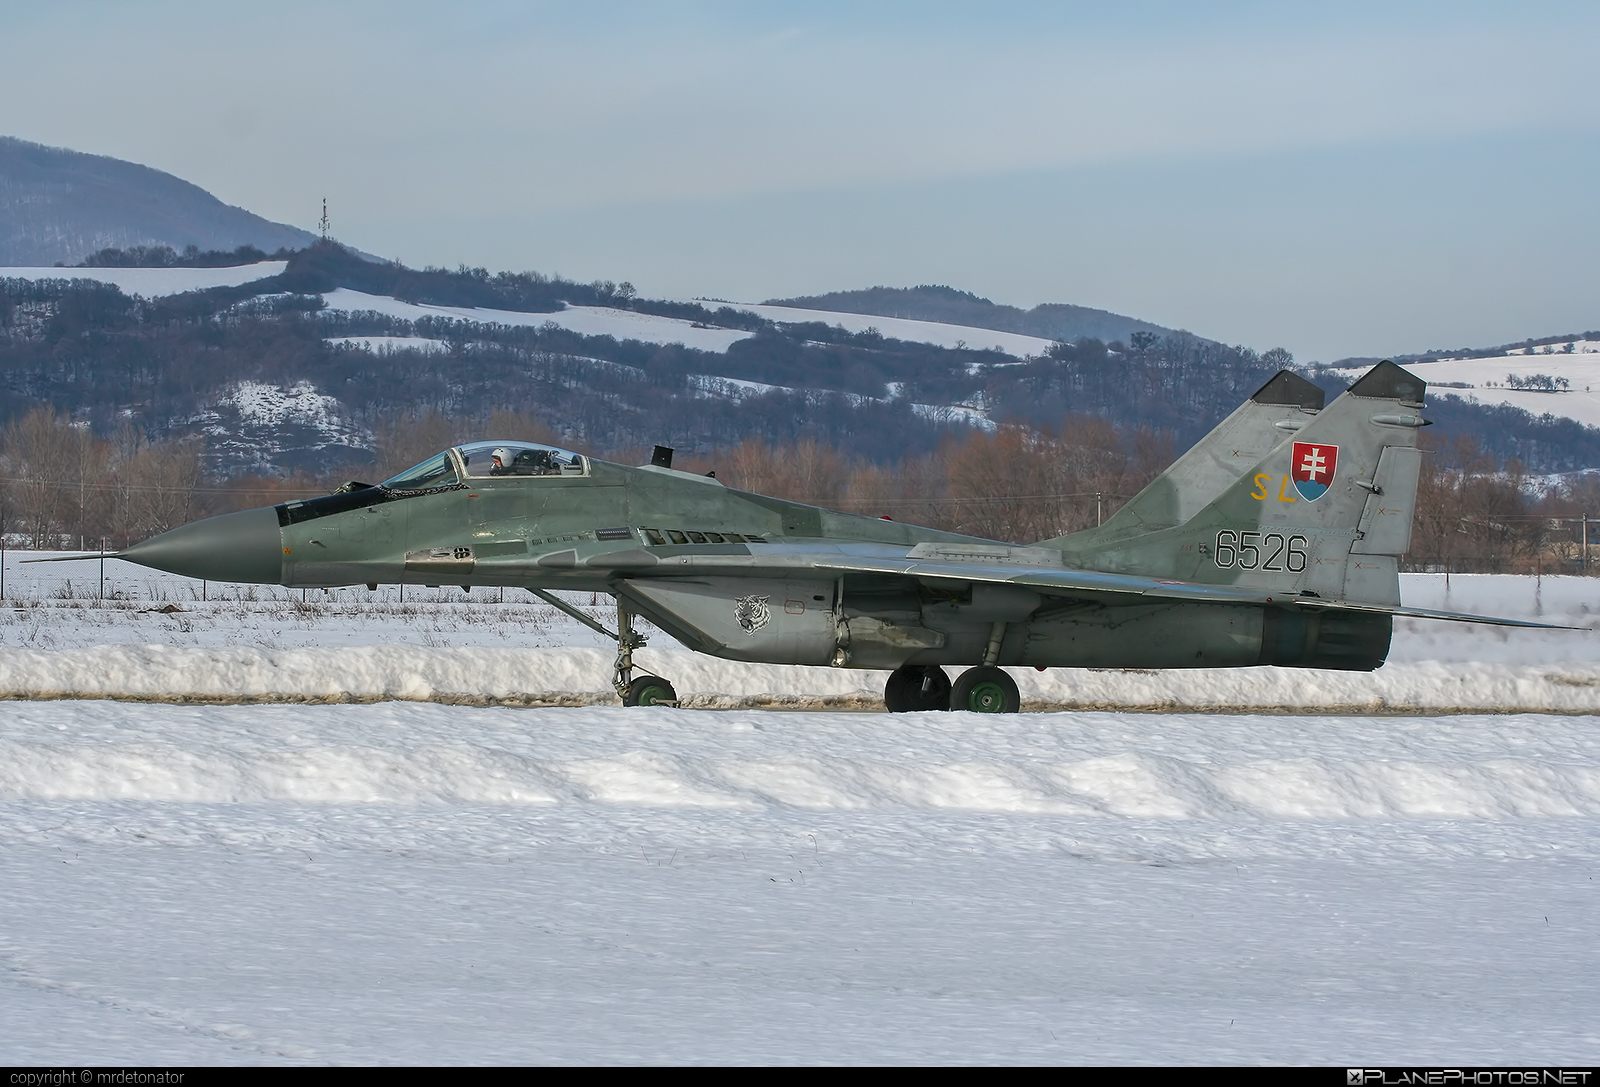 Mikoyan-Gurevich MiG-29AS - 6526 operated by Vzdušné sily OS SR (Slovak Air Force) #mig #mig29 #mig29as #mikoyangurevich #slovakairforce #vzdusnesilyossr